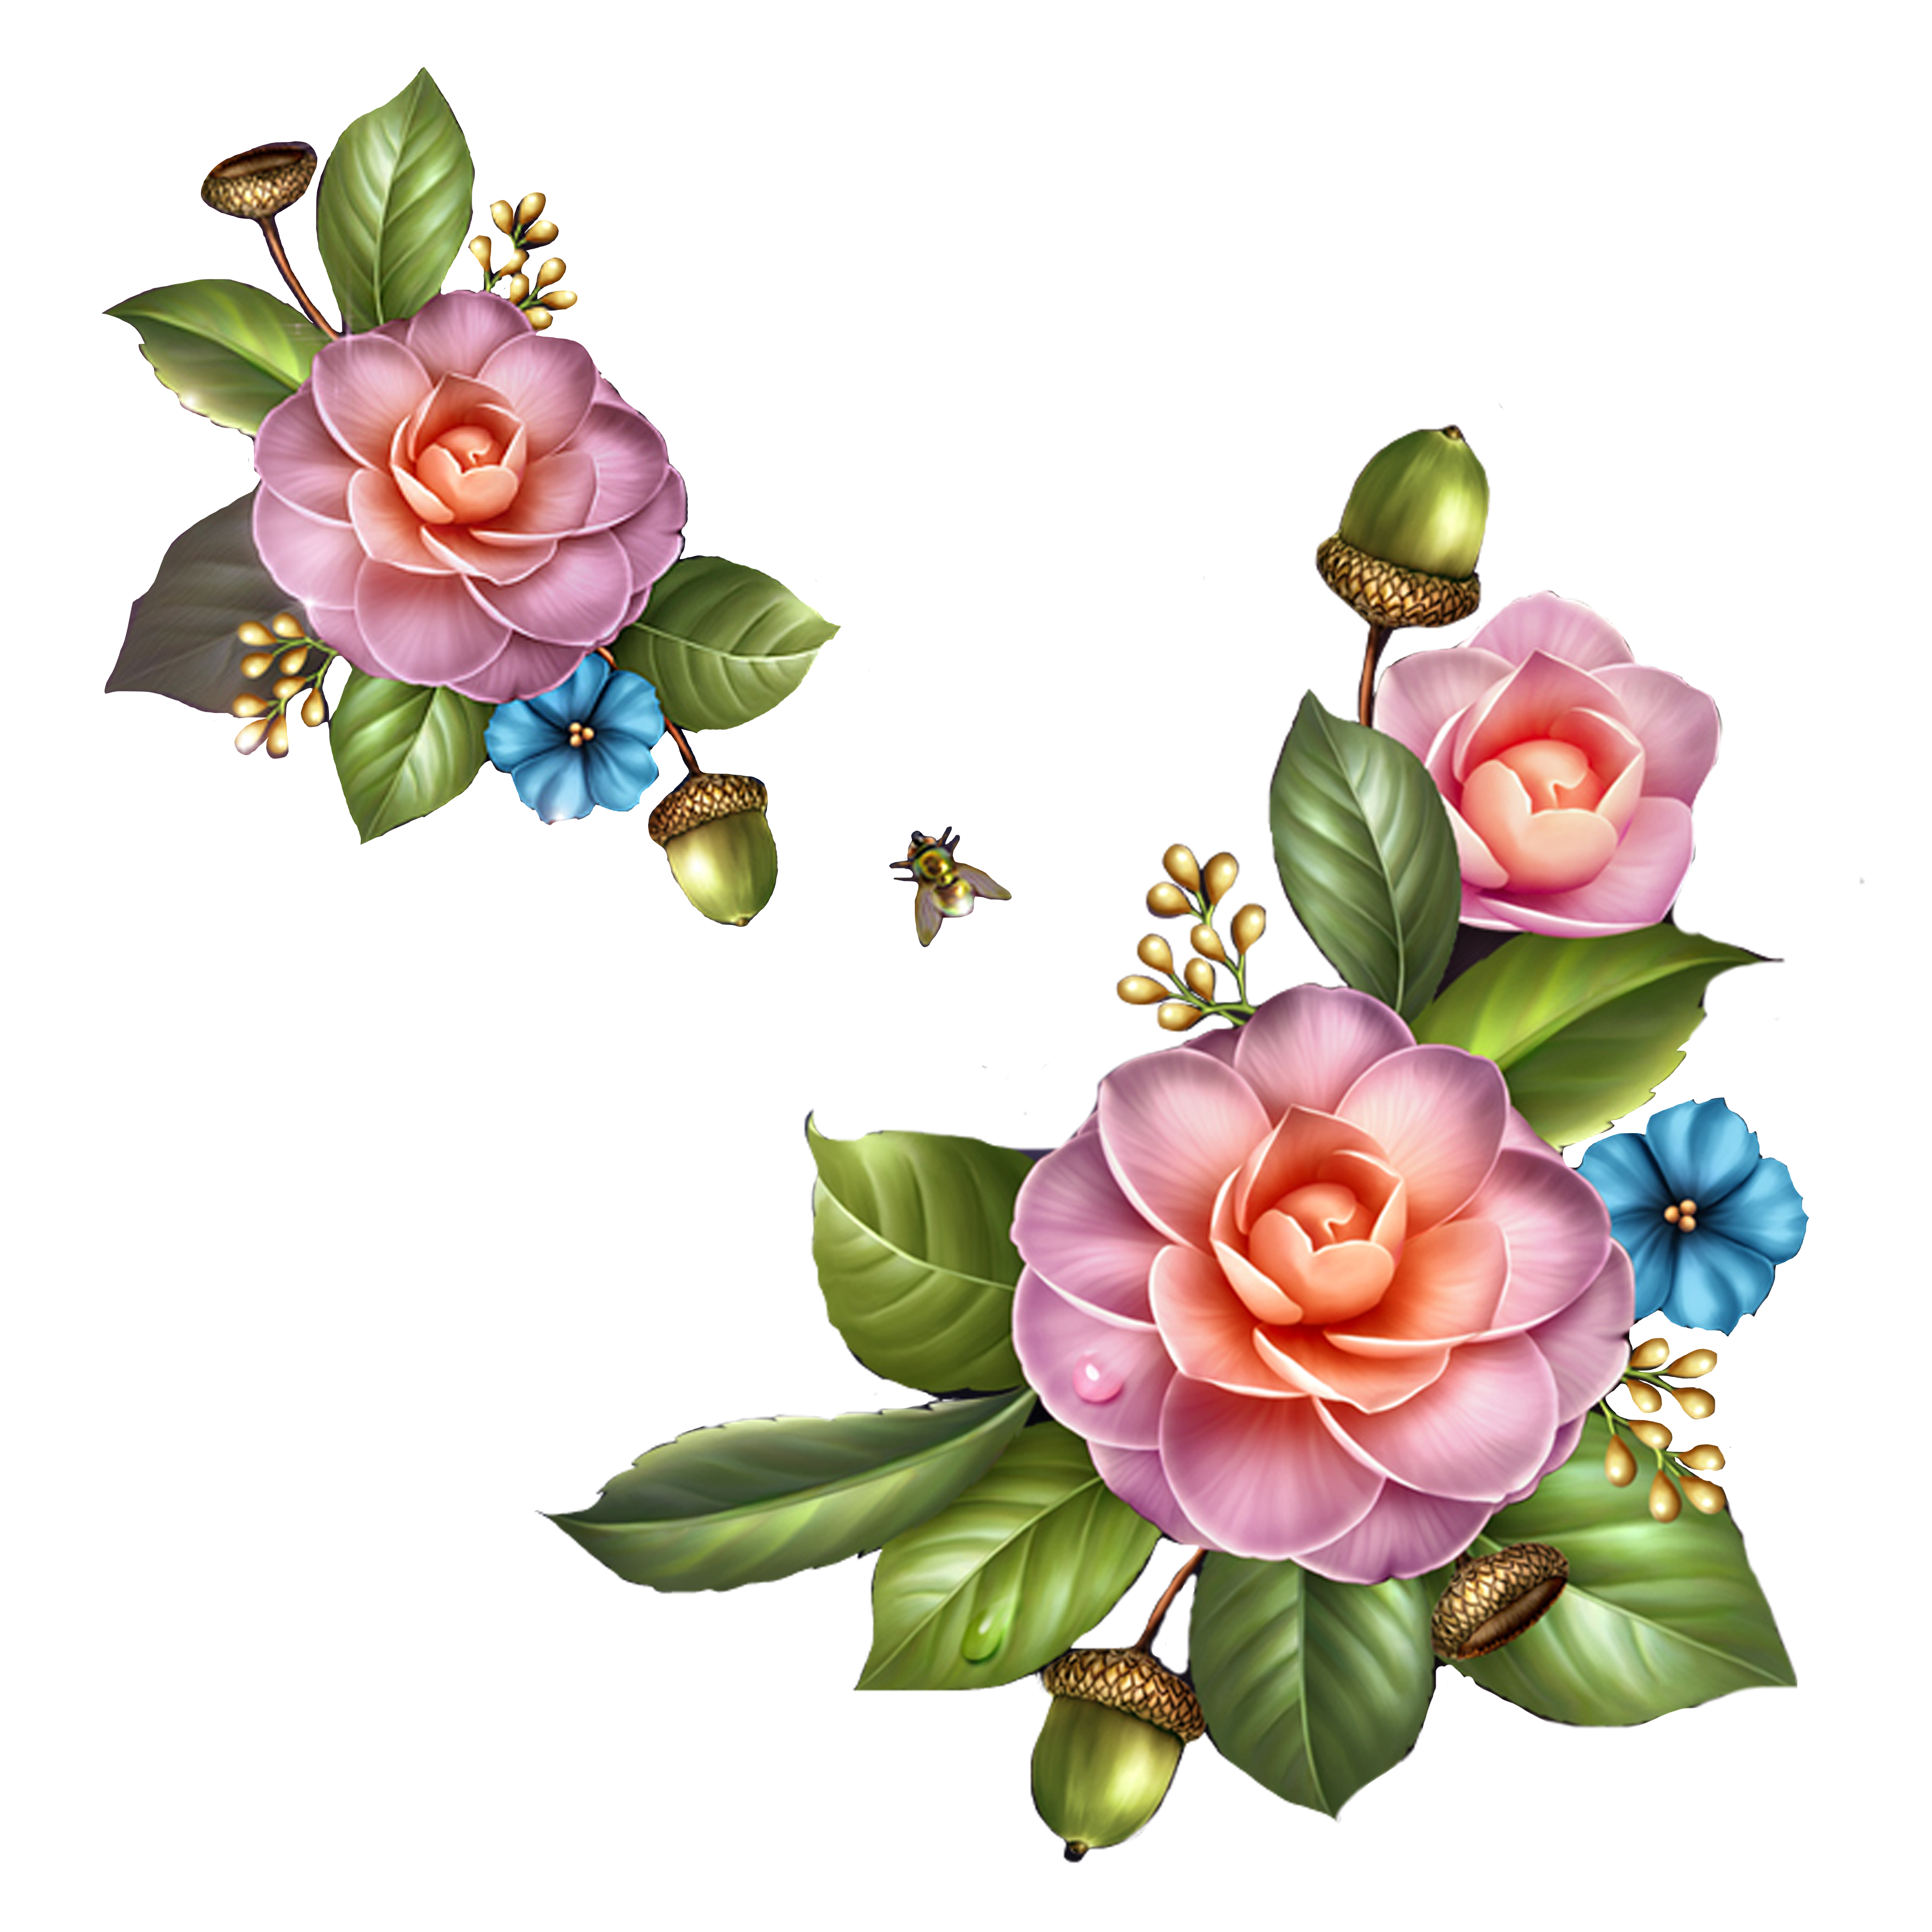 Flower garden clipart free image free stock Flower Garden roses Clip art - flower 4000*4000 transprent Png Free ... image free stock